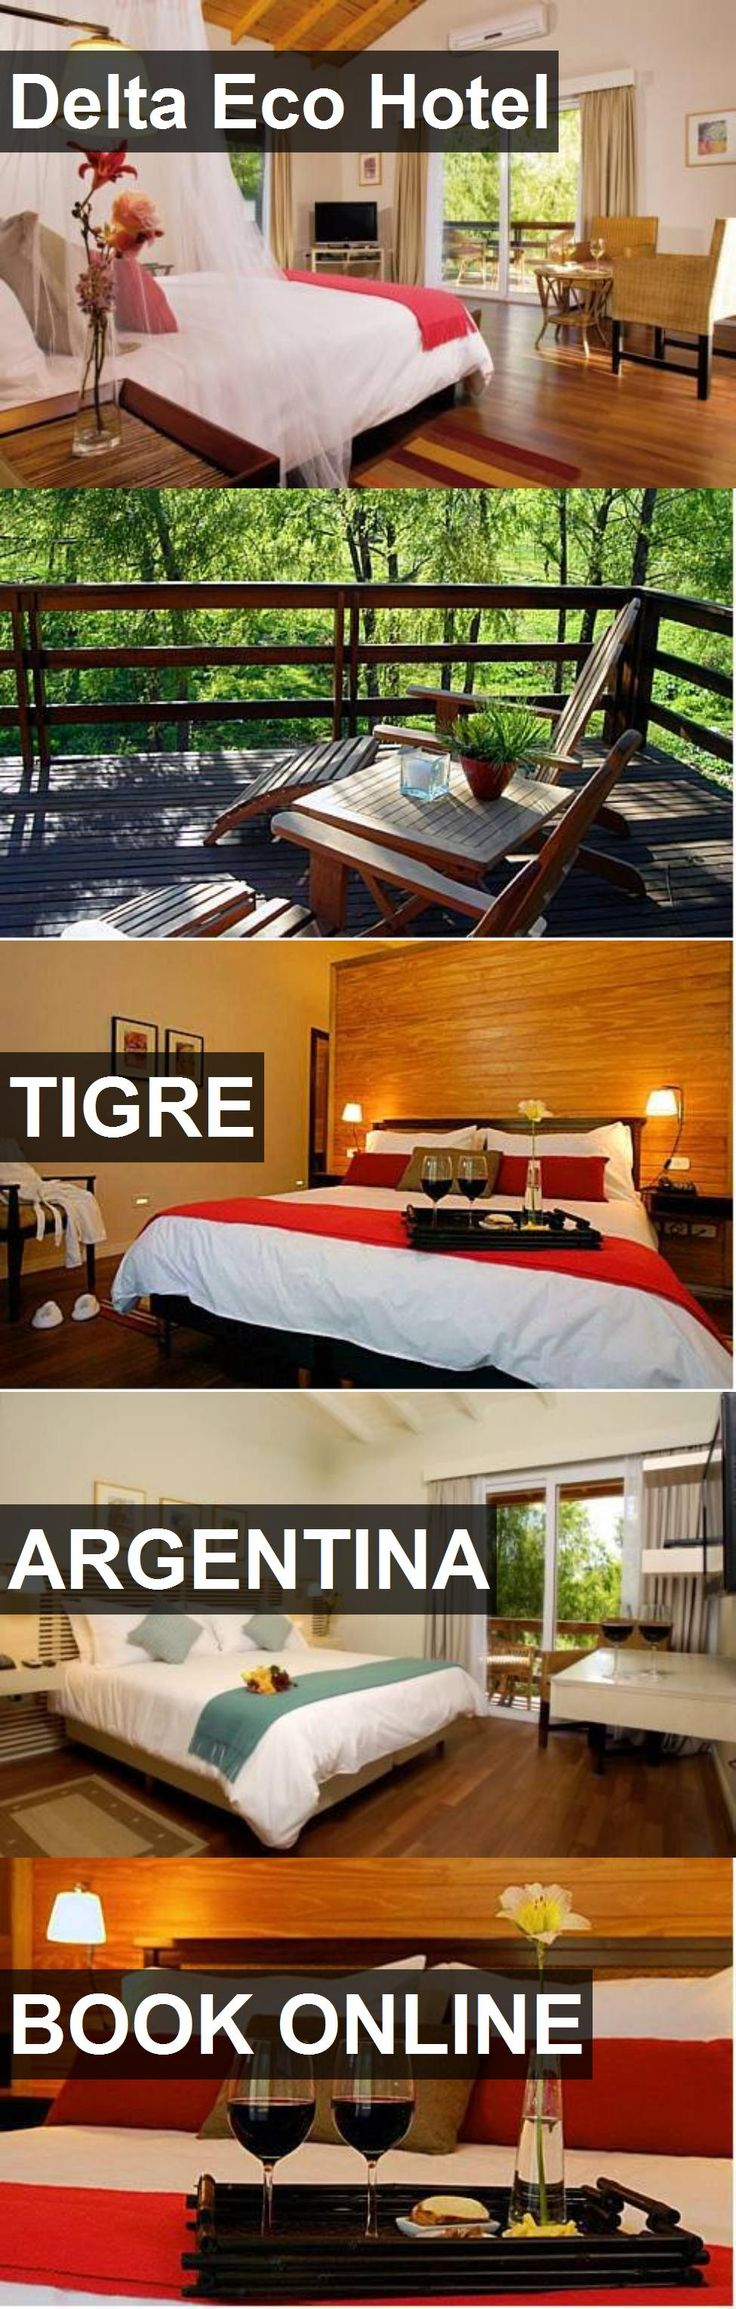 Delta Eco Hotel in Tigre, Argentina. For more information, photos, reviews and best prices please follow the link. #Argentina #Tigre #travel #vacation #hotel